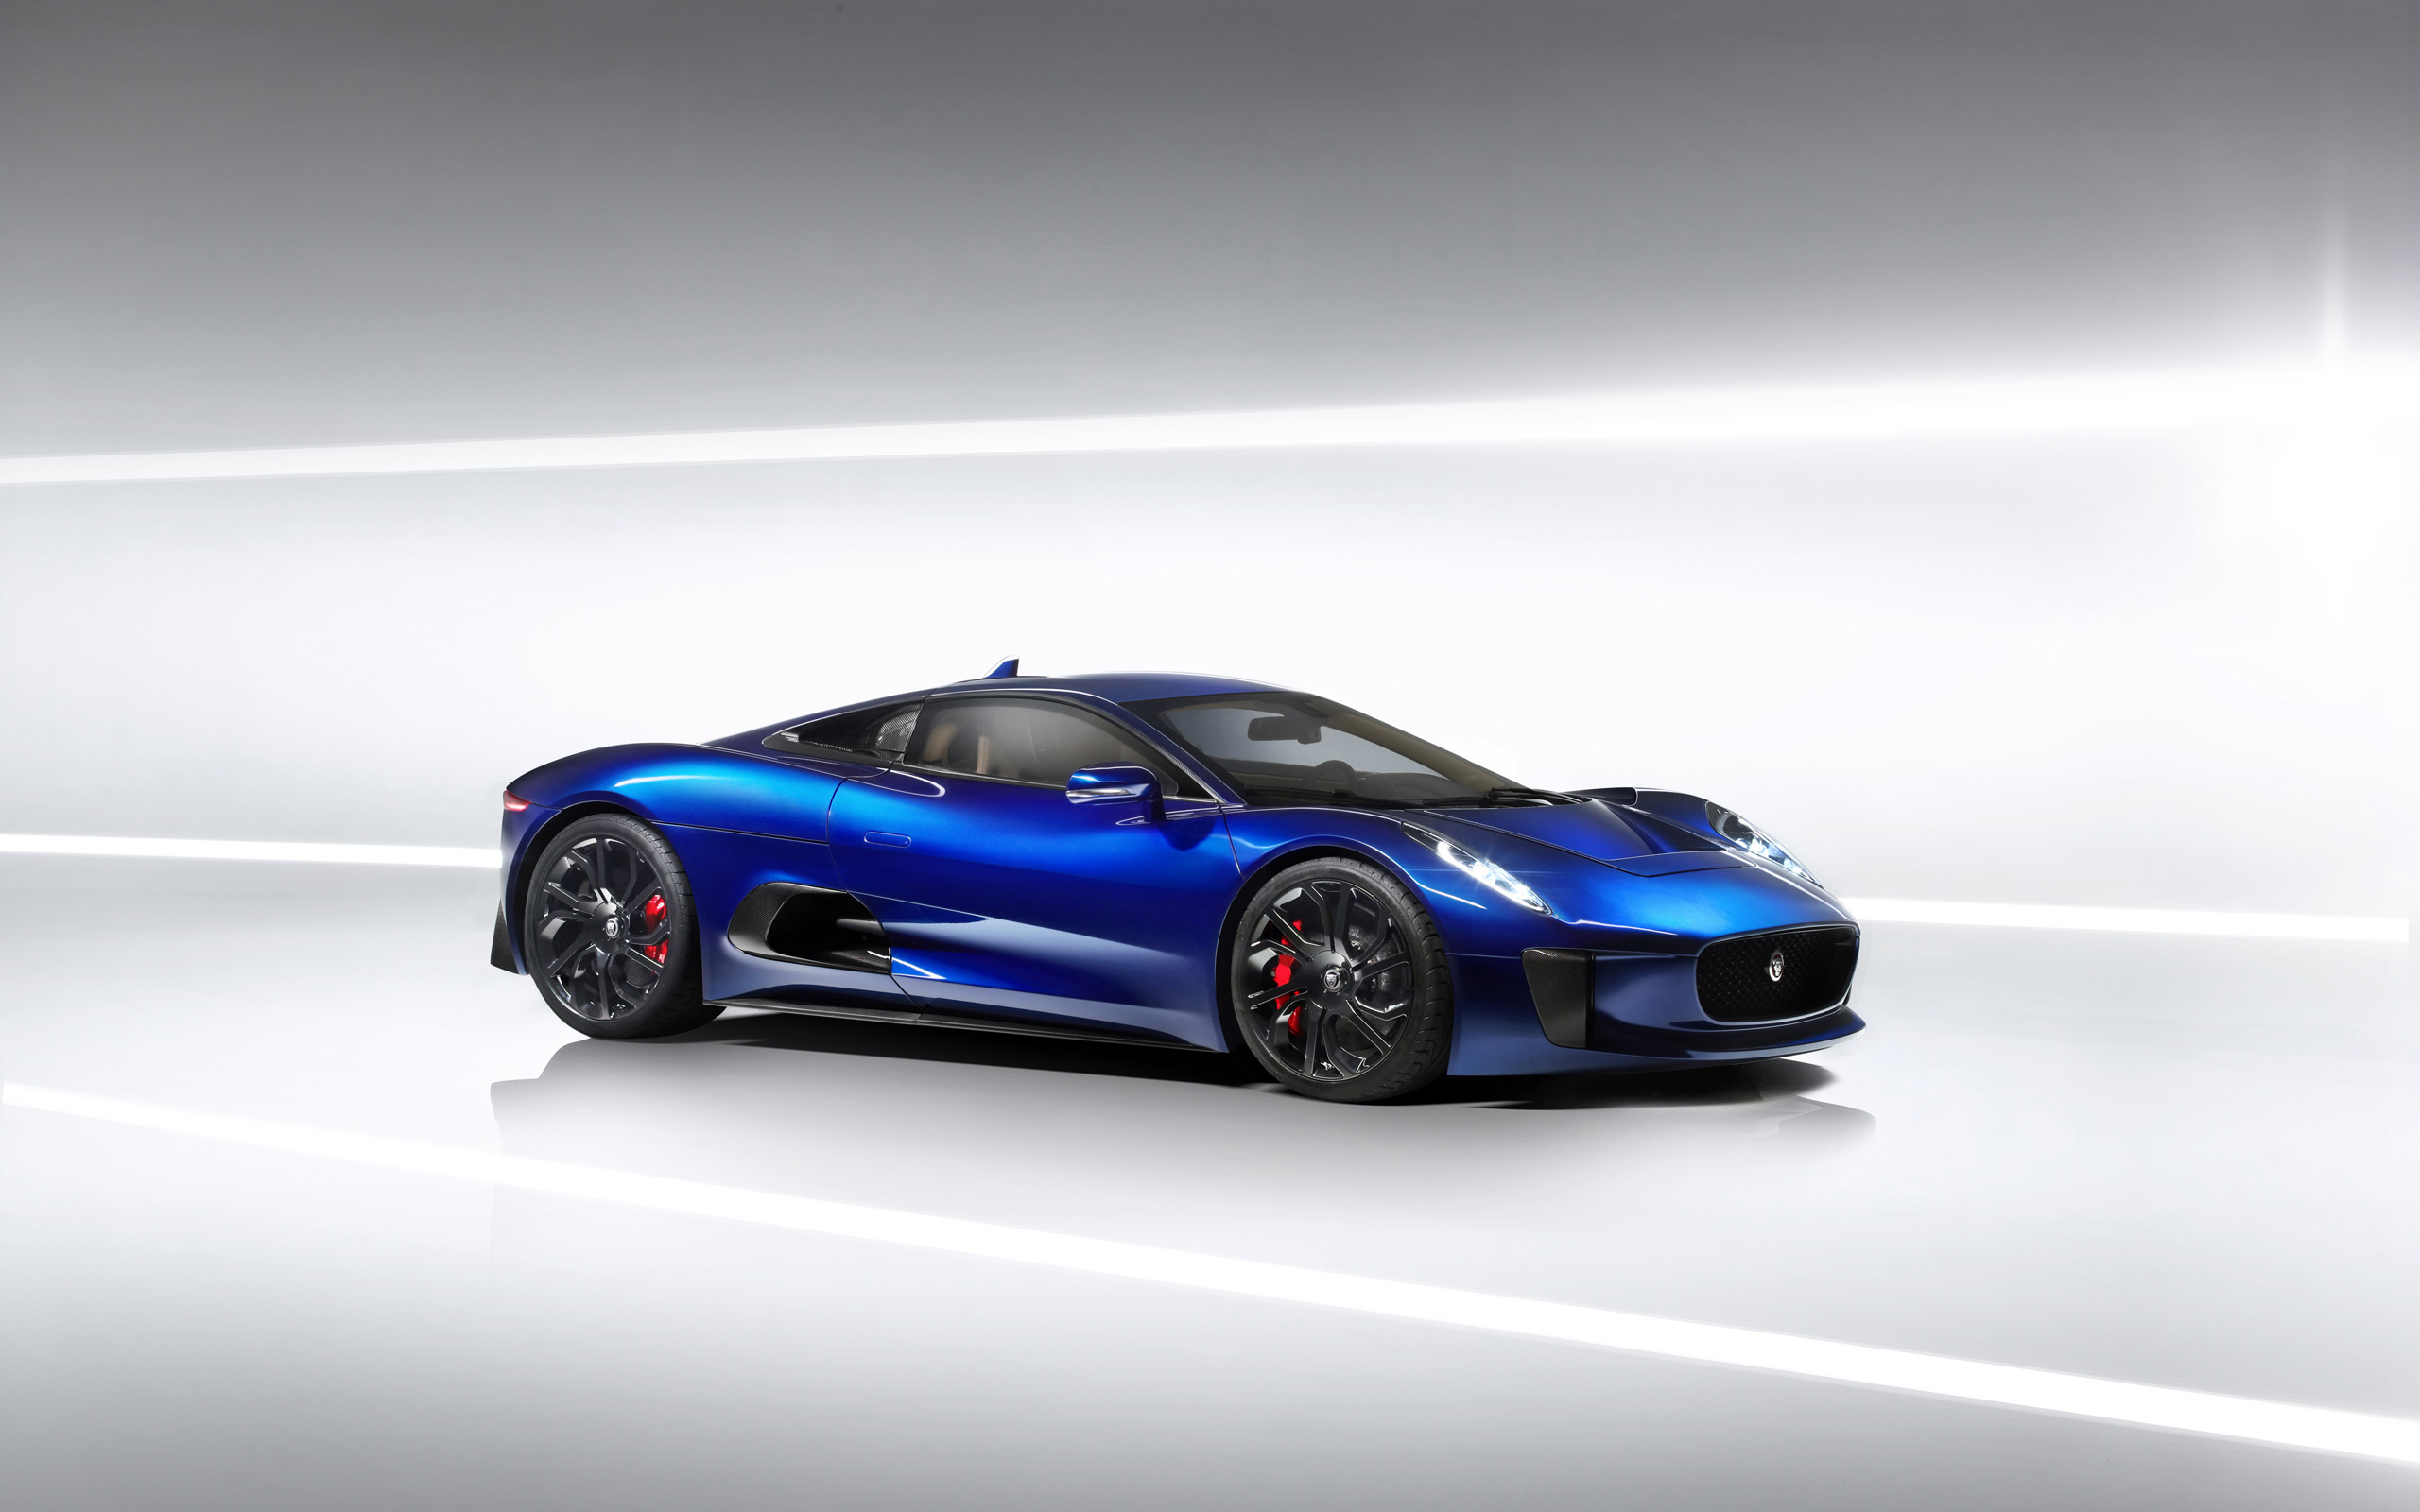 2013 jaguar c x75 prototype wallpaper hd car wallpapers. Black Bedroom Furniture Sets. Home Design Ideas